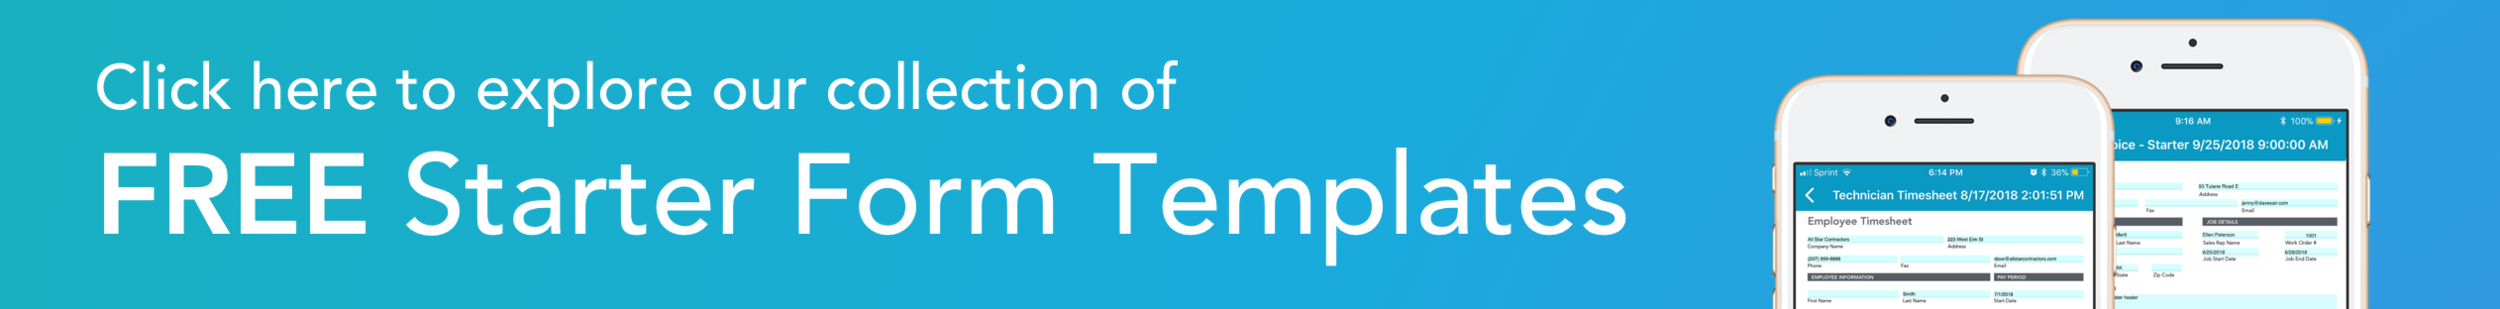 Click here to explore our collection of Starter Form Templates (free to use in your account!)